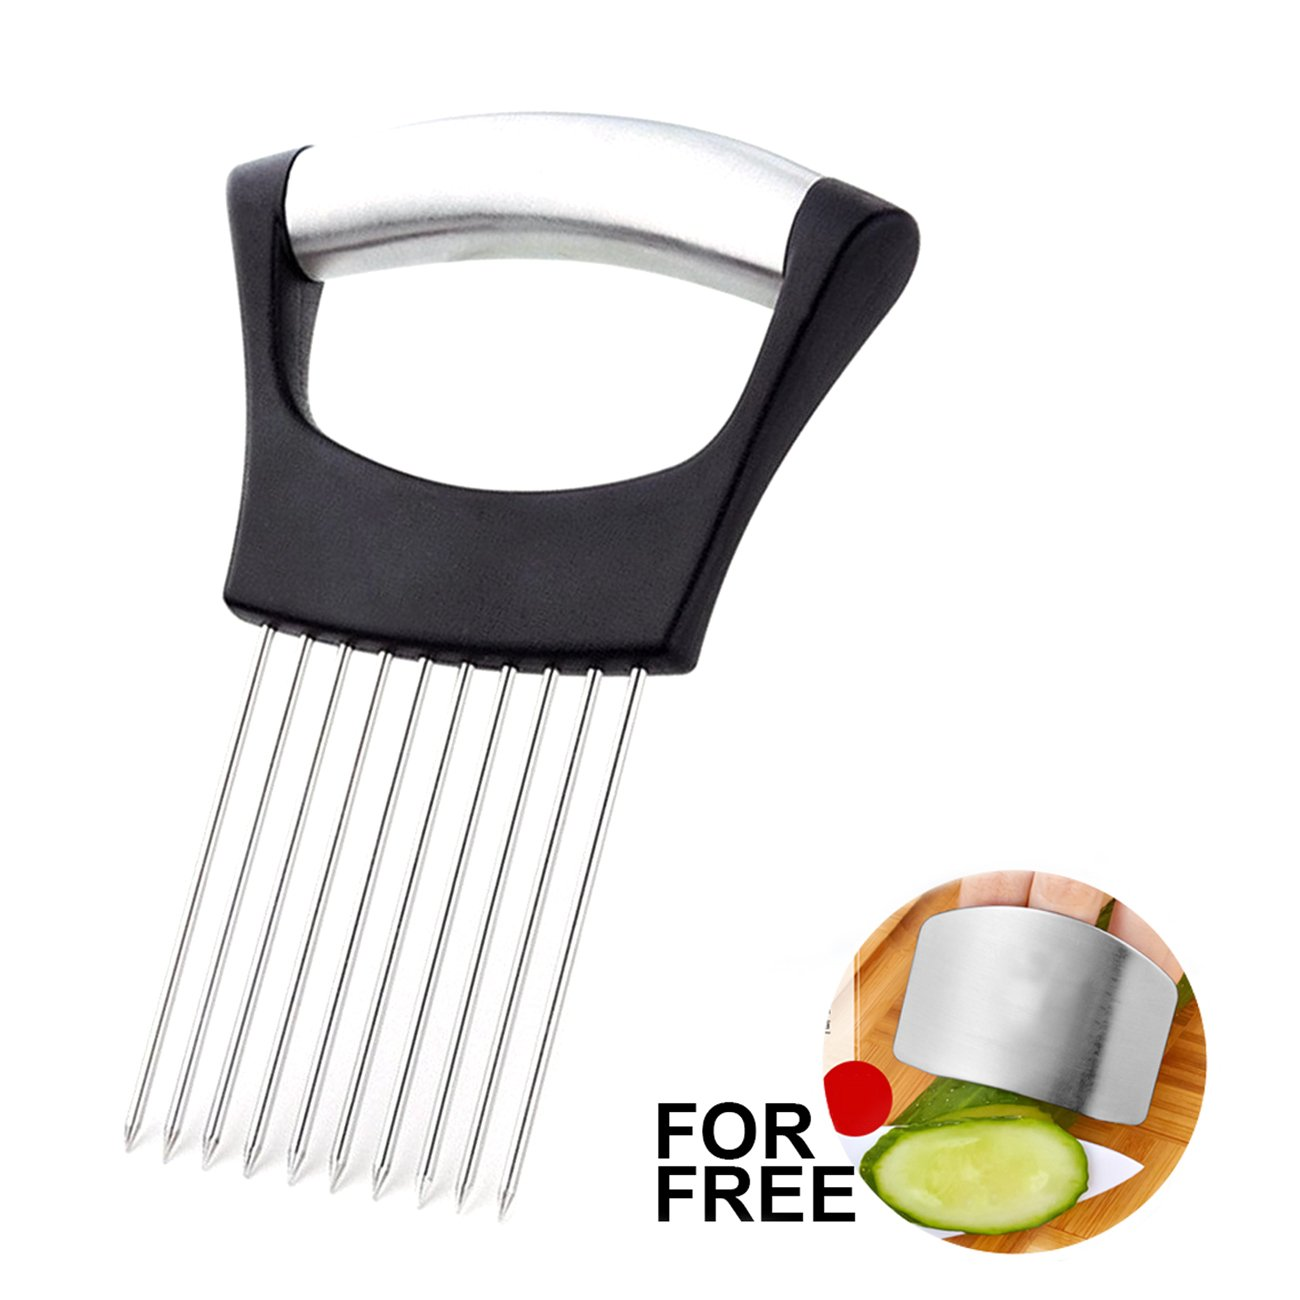 Best Utensils Onion Holder For Slicing Tomato Lemon Slicer Holder Vegetable Potato Cutter Slicer Meat Tenderiser Stainless Steel Cutting Kitchen Gadget